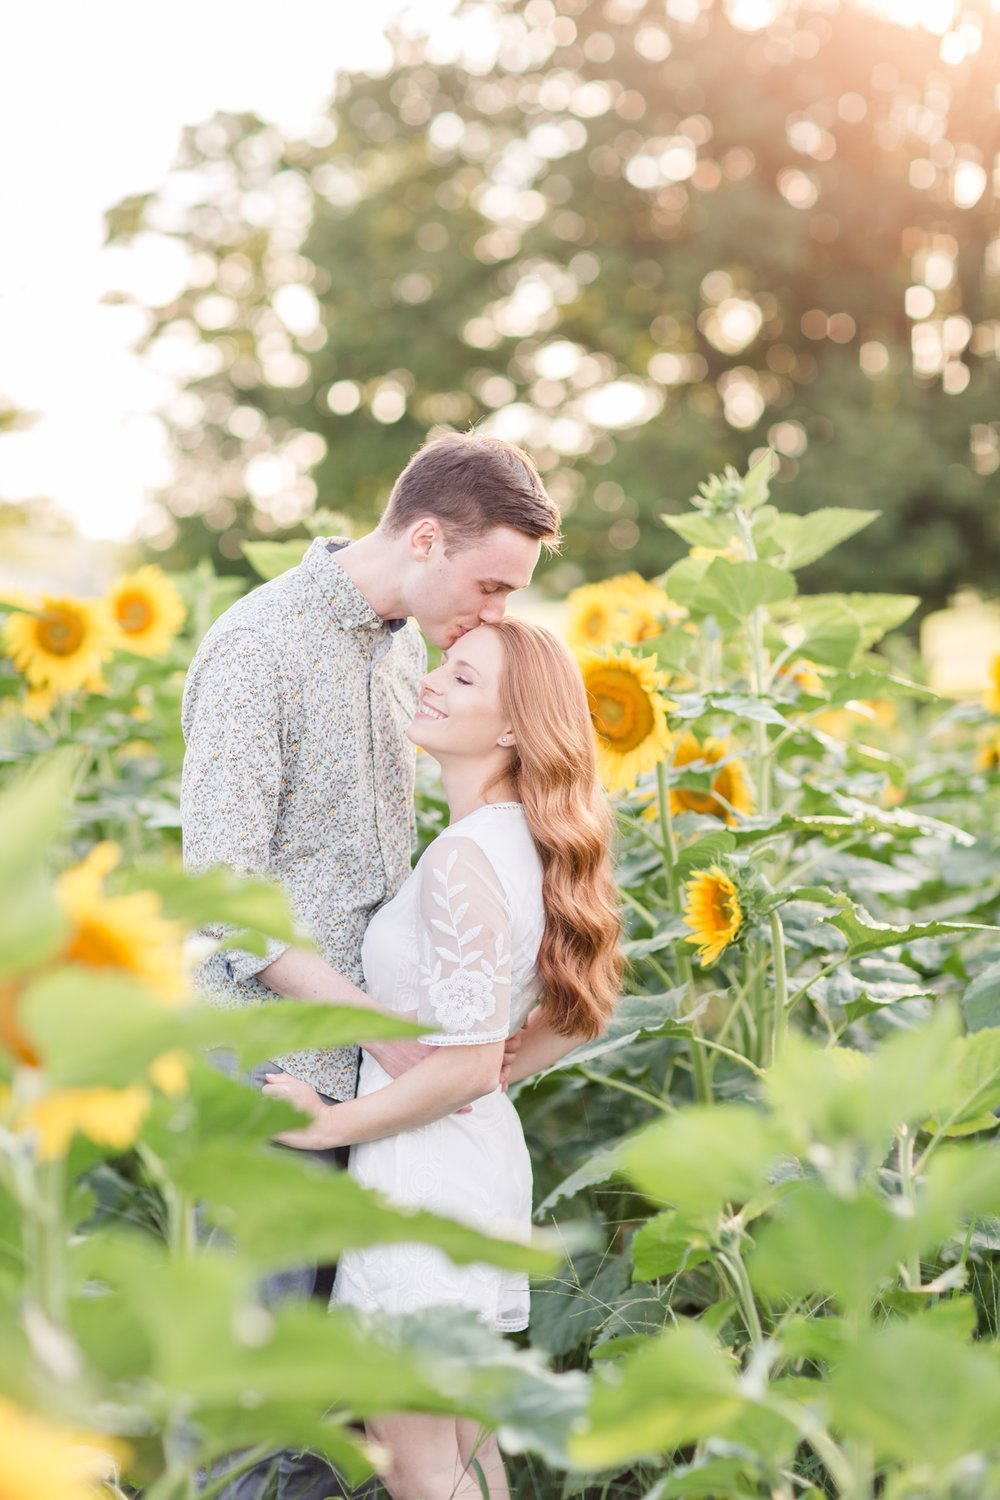 Jessica & Leo Engagement-21_Maryland-Agricultural-Resource-Center-engagement-photographer-anna-grace-photography-photo.jpg